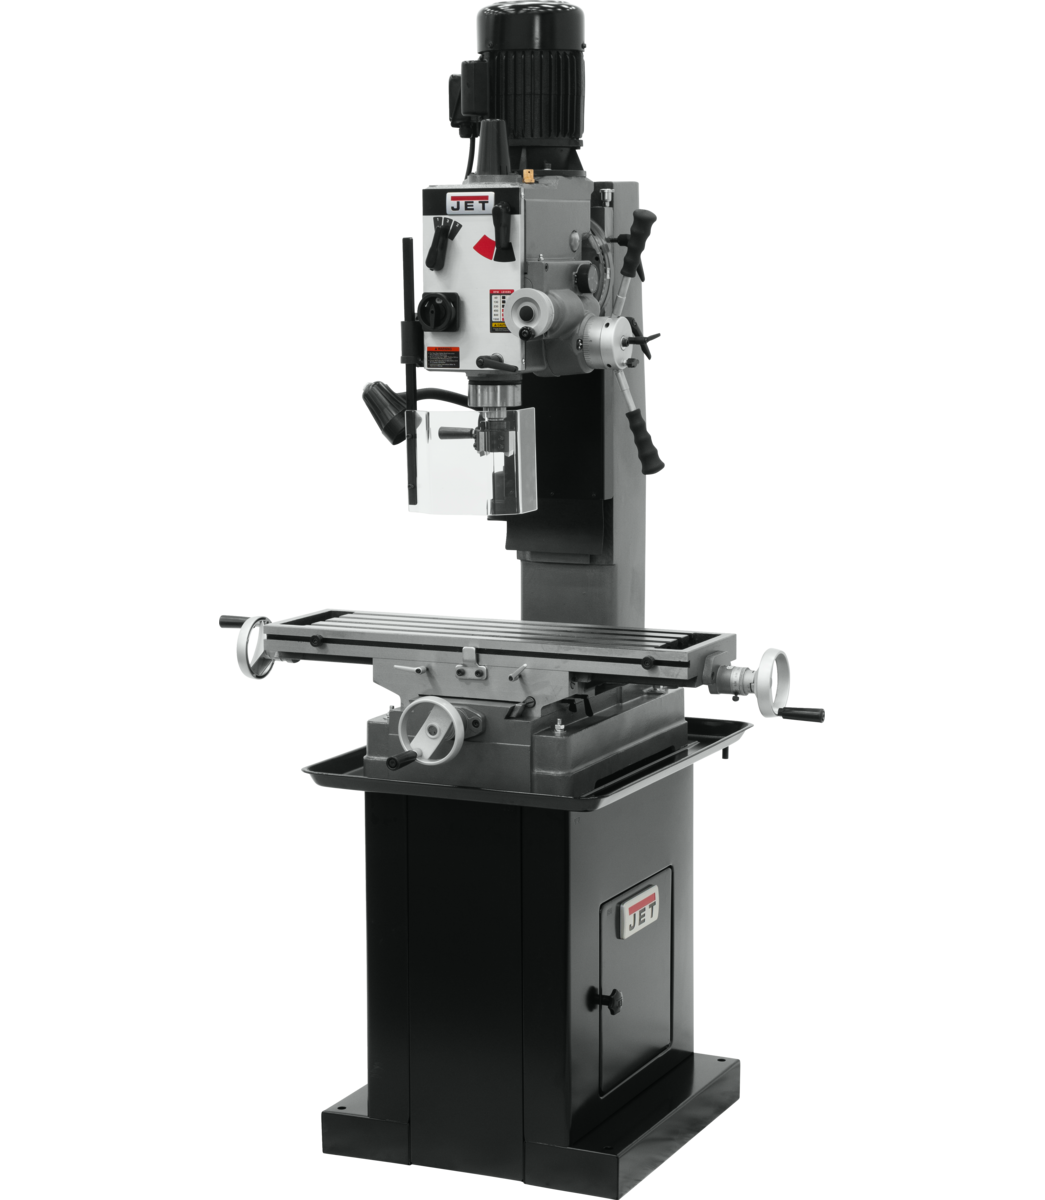 JMD-45GHPF Geared Head Square Column Mill/Drill with Power Downfeed